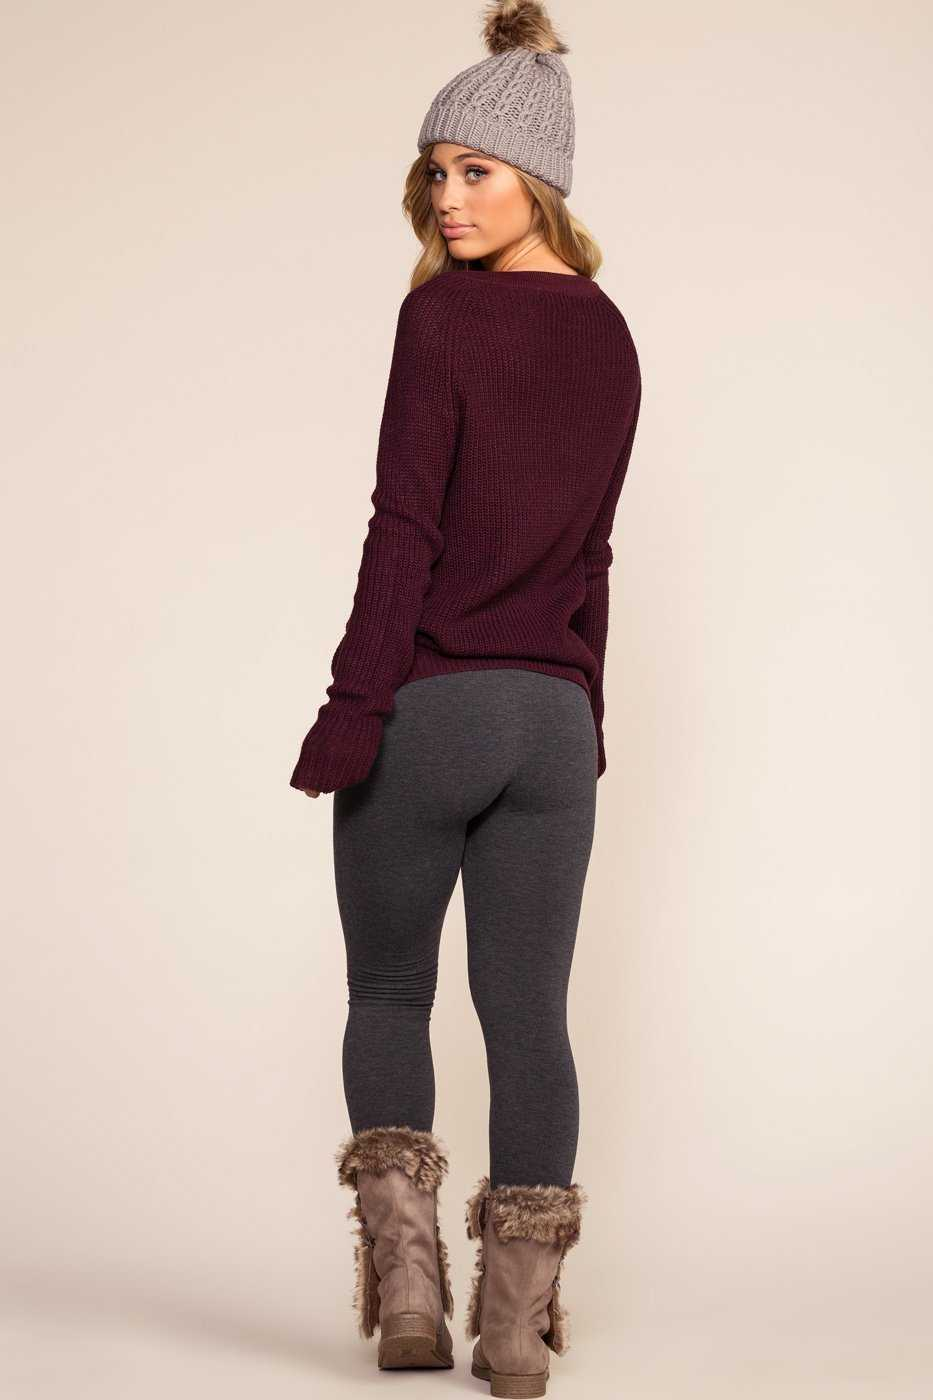 Leggings - Maja Fleece Leggings - Charcoal